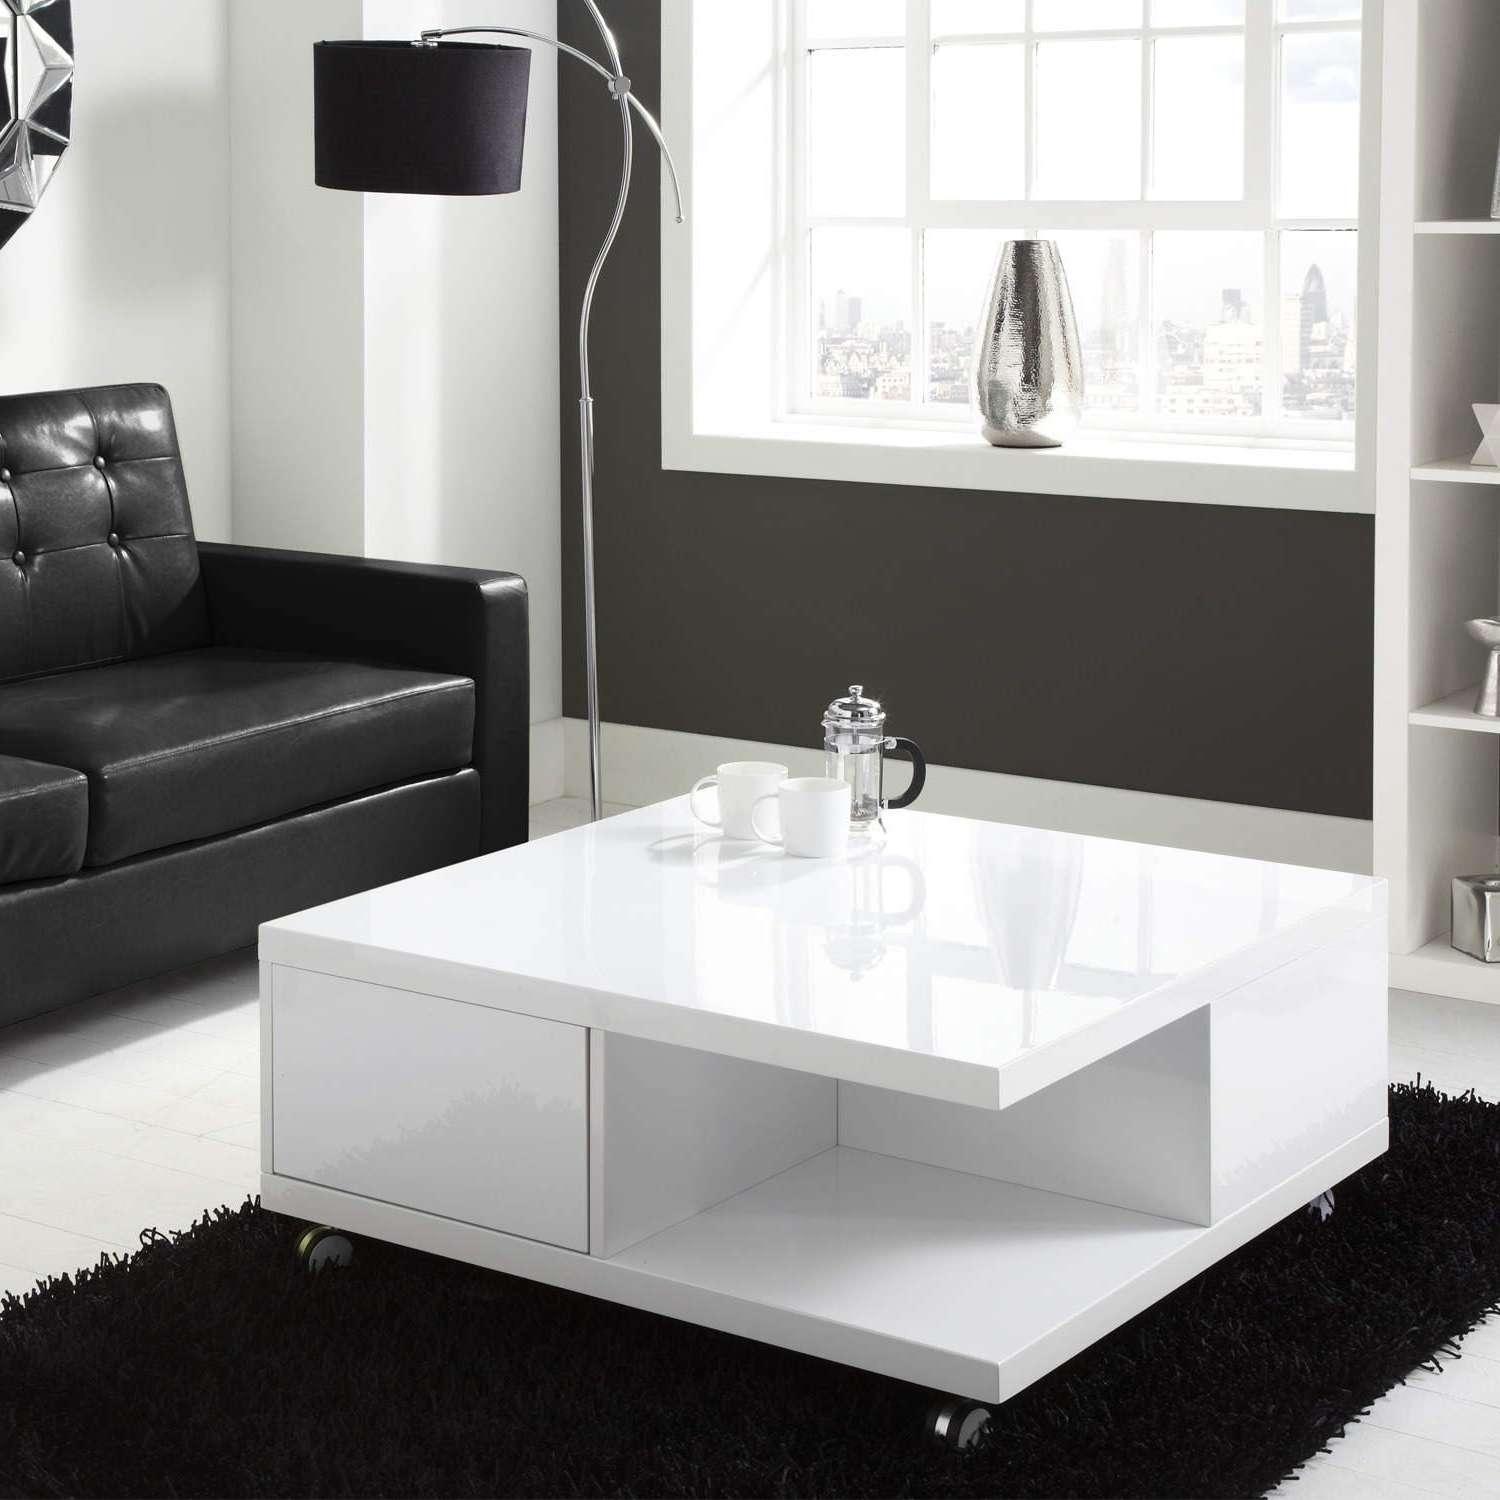 Most Popular High Gloss Coffee Tables For Coffee Tables : Storage Table High Gloss White Coffee With Drawers (View 10 of 20)